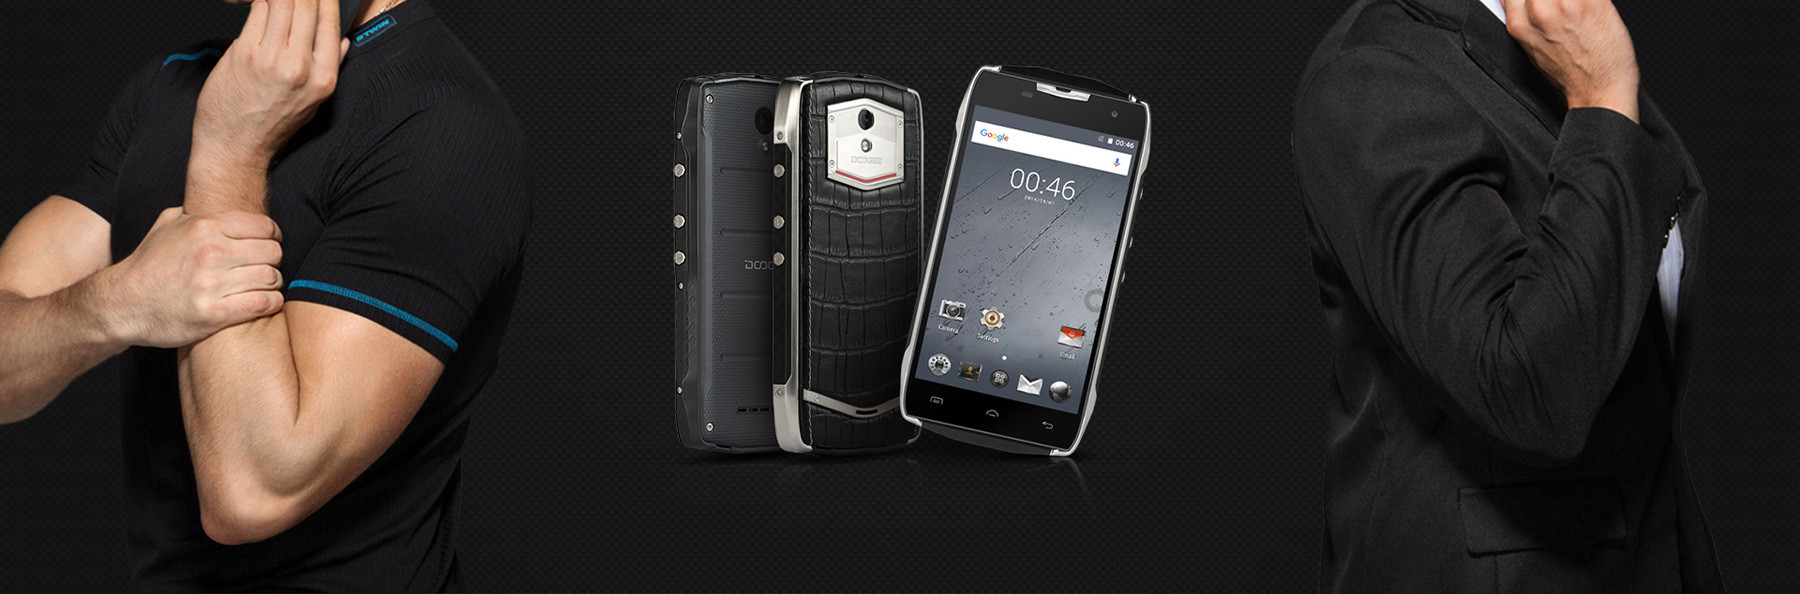 Doogee T5 Lite Android 6.0 5.0 inch 4G Smartphone MTK6735 Quad Core 1.0GHz 2GB RAM 16GB ROM Gyroscope OTG